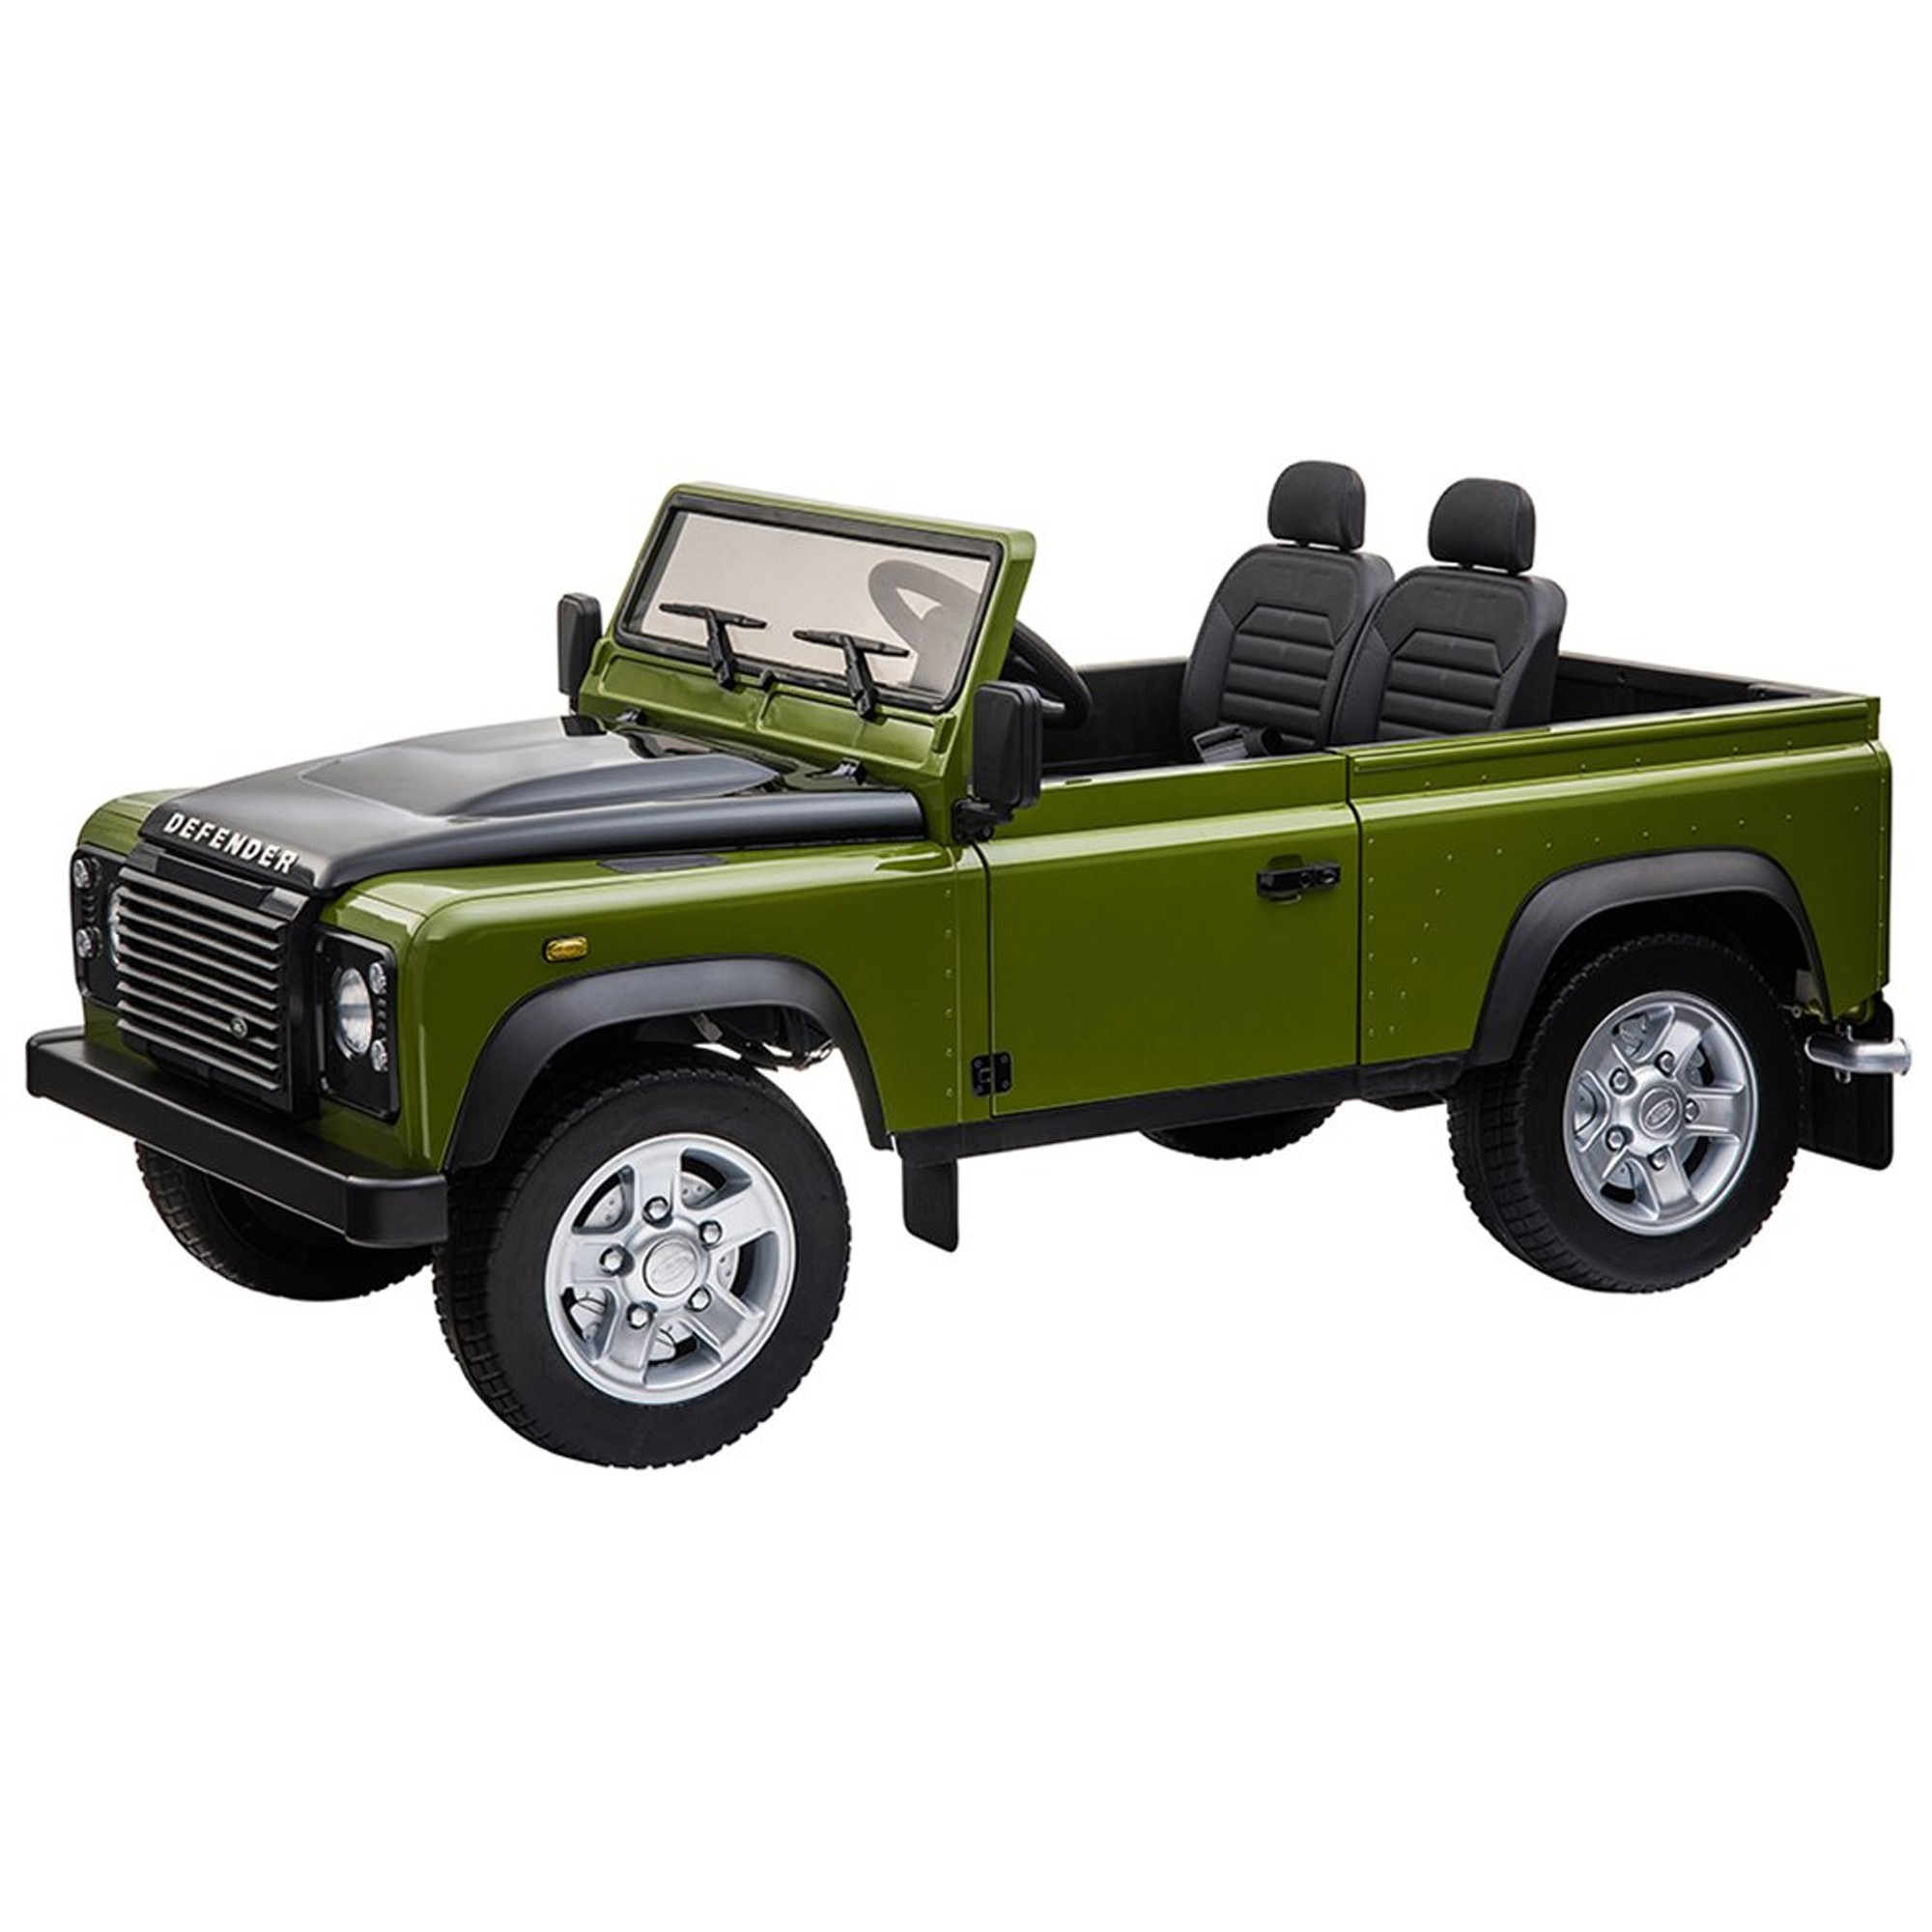 Ride on Electric Defender 90 - Large - Green